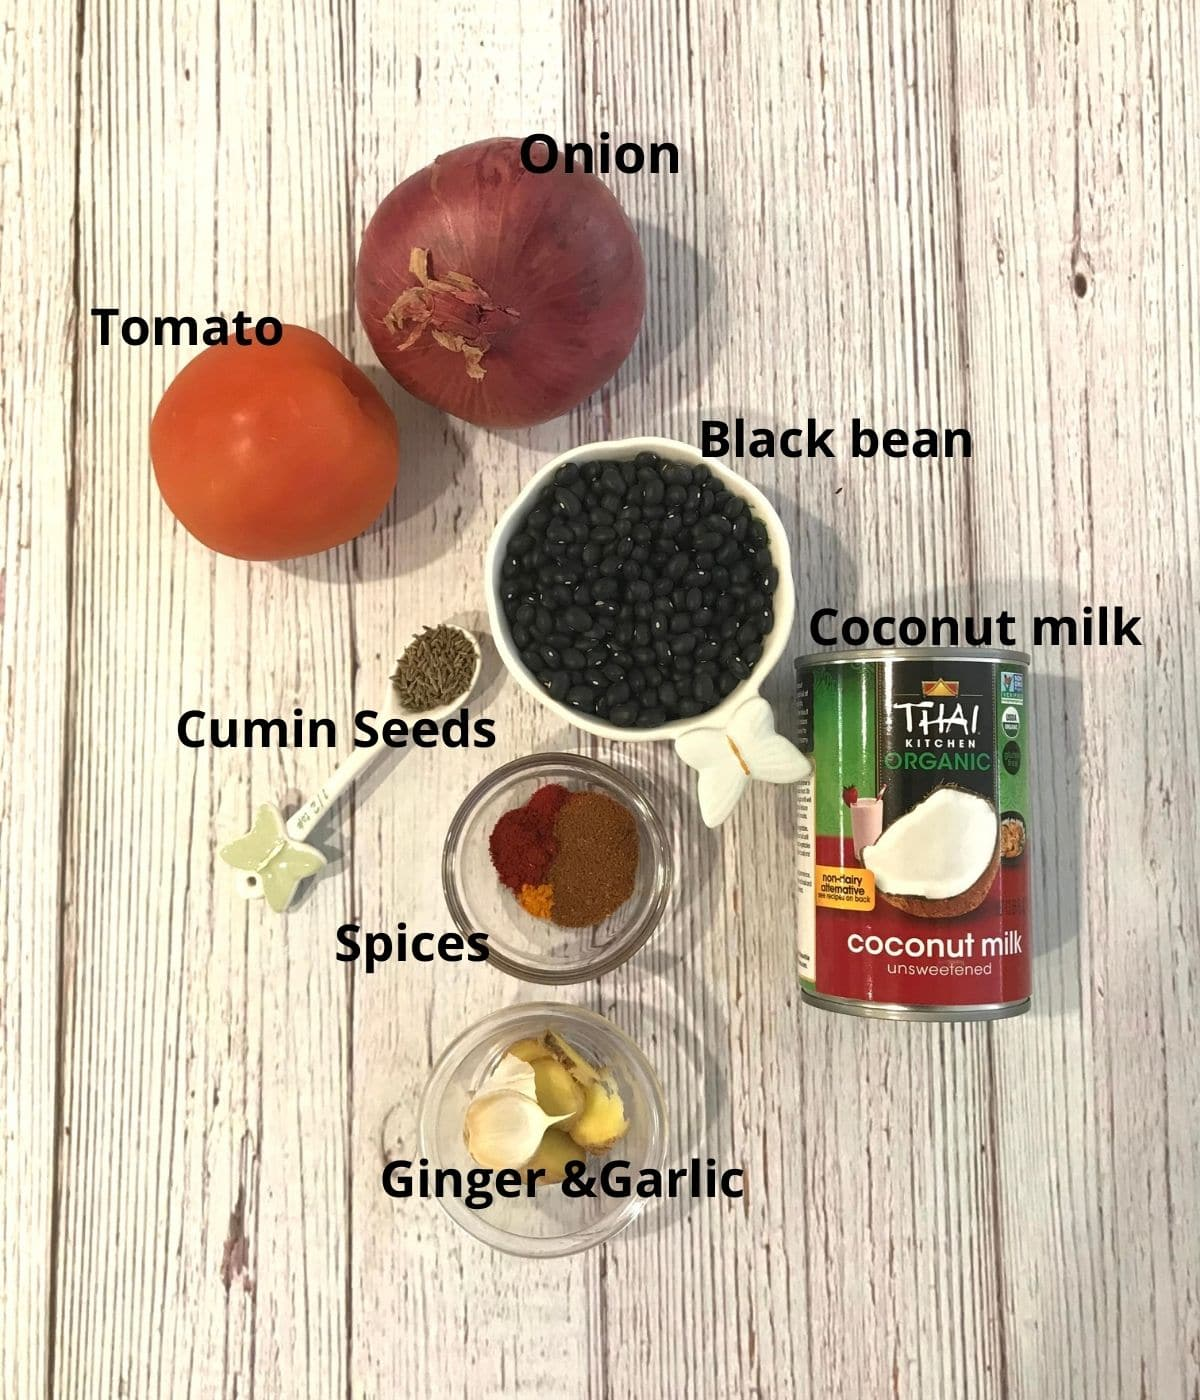 A table is filled with black bean, tomatoes, onion, spices for black bean curry